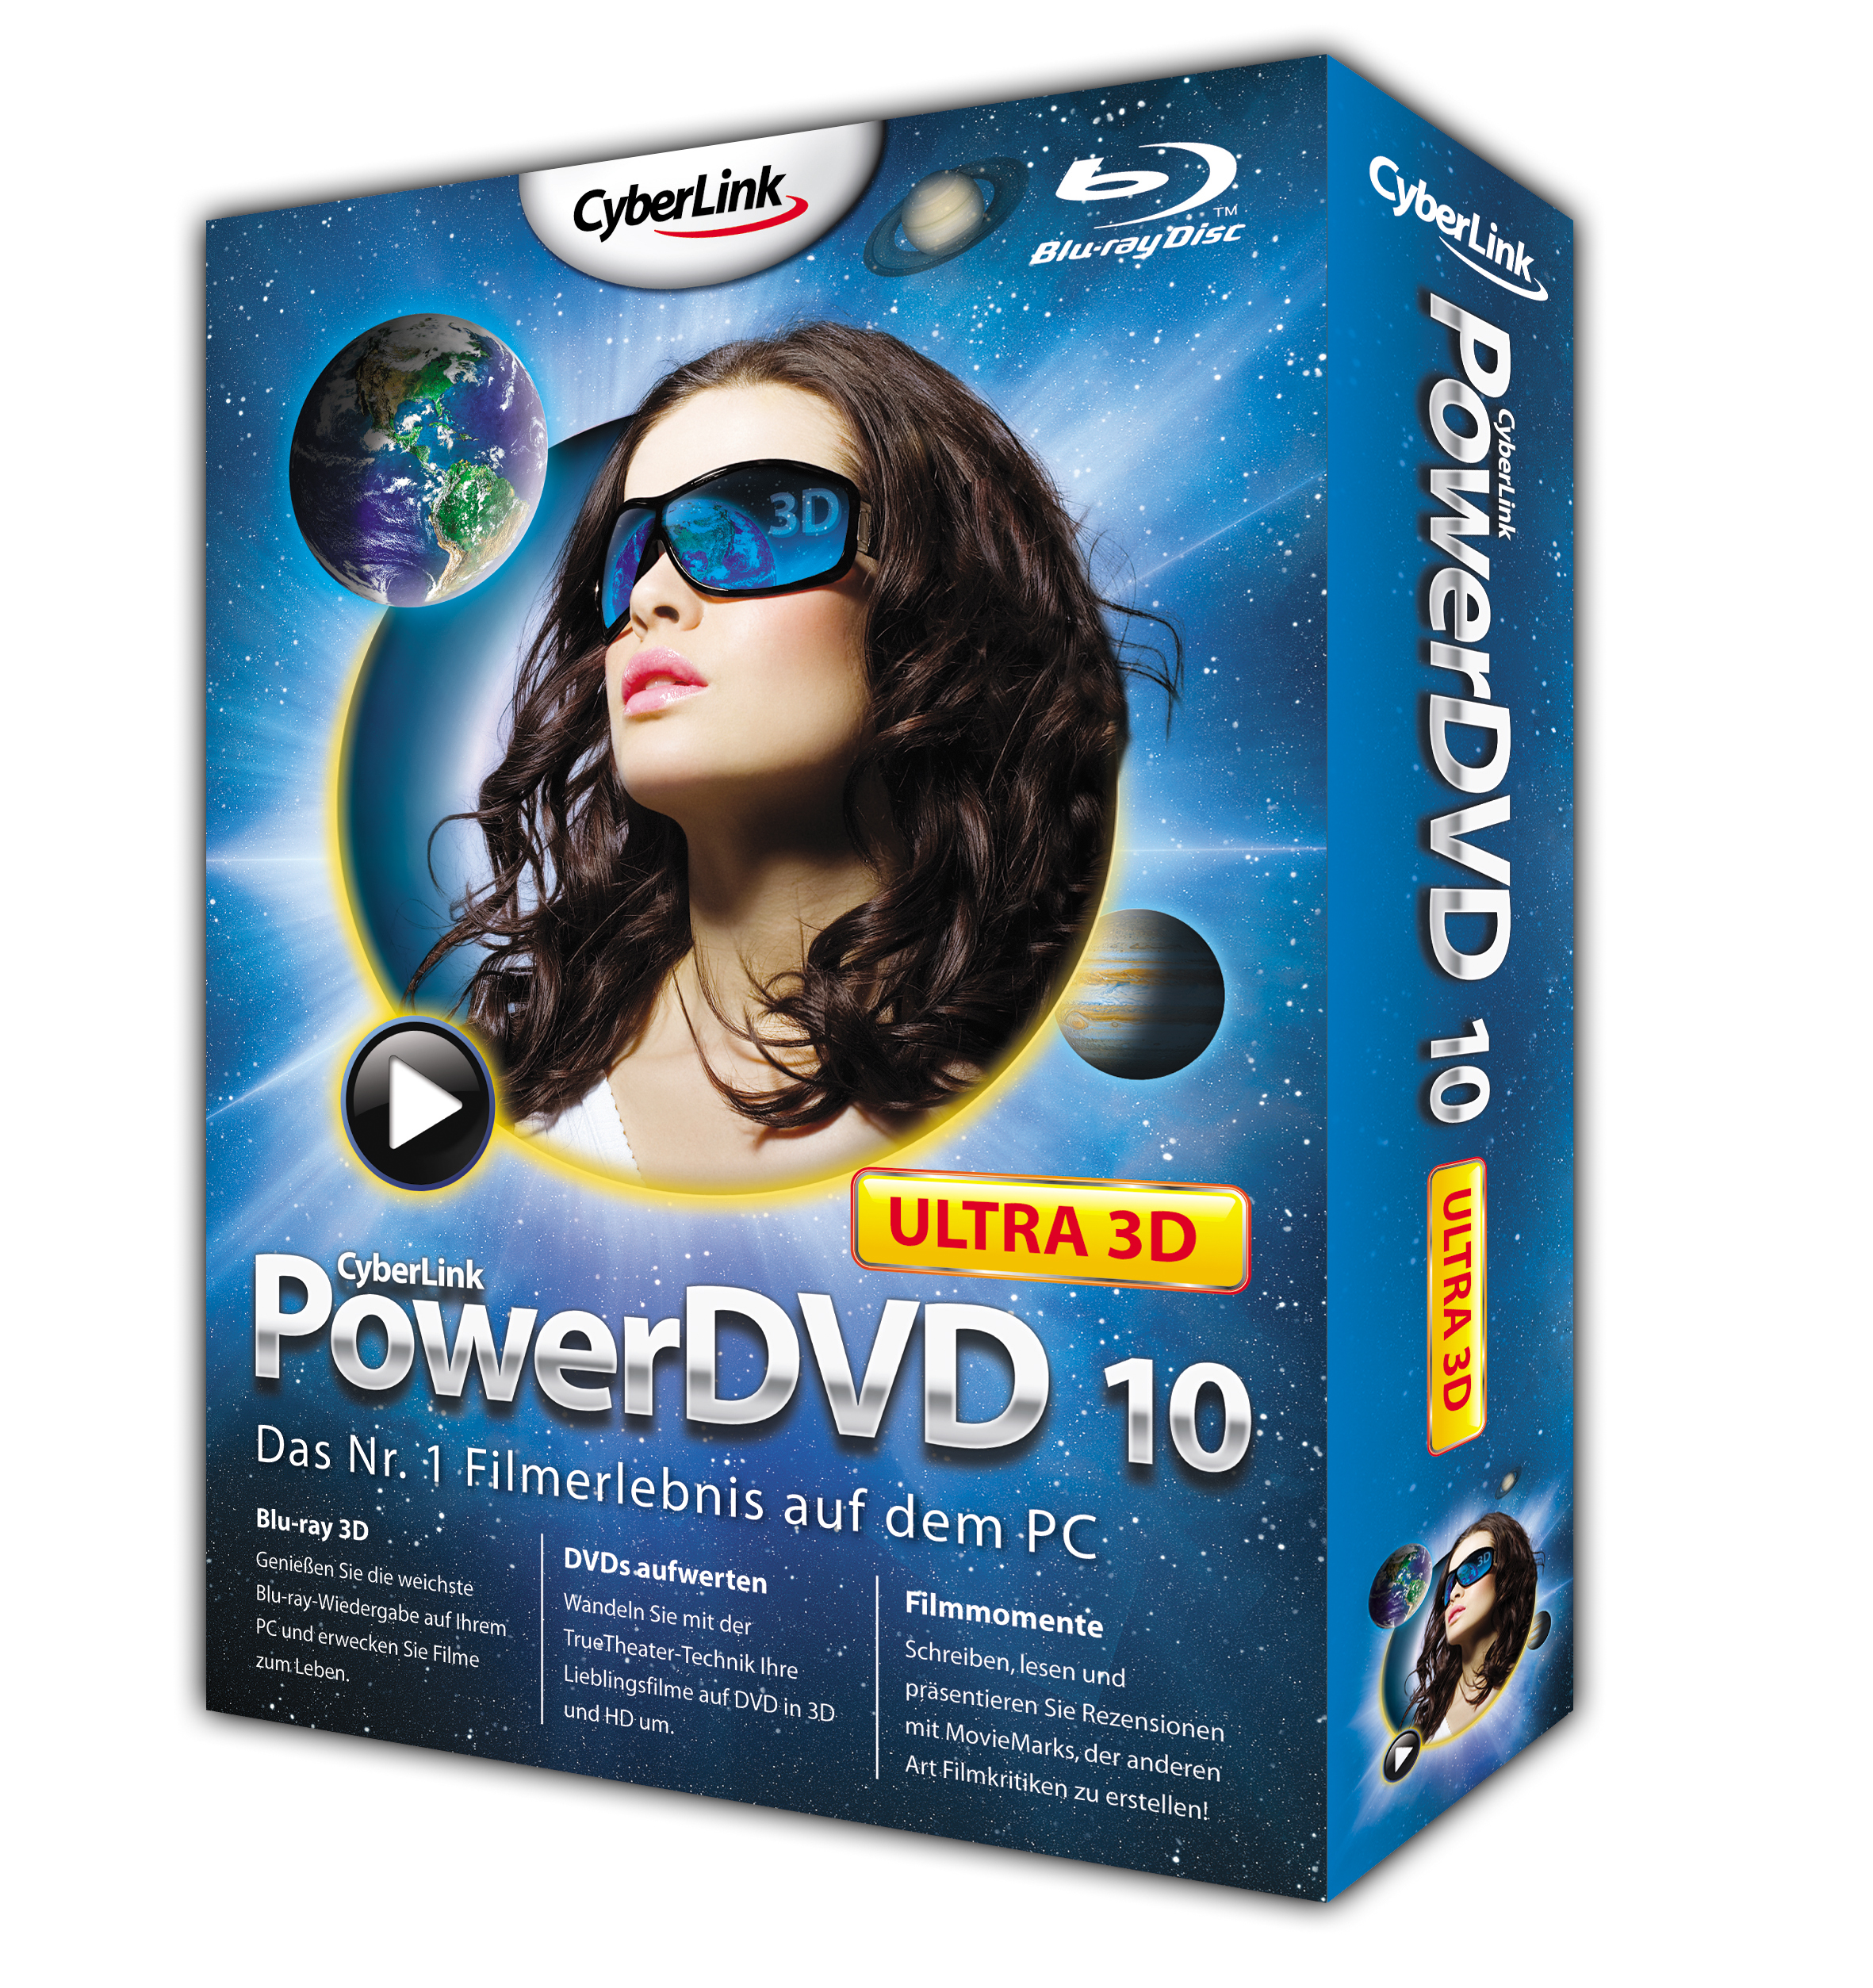 Cyberlink powerdvd 10 ultra v10.0.1516.51 retail regged